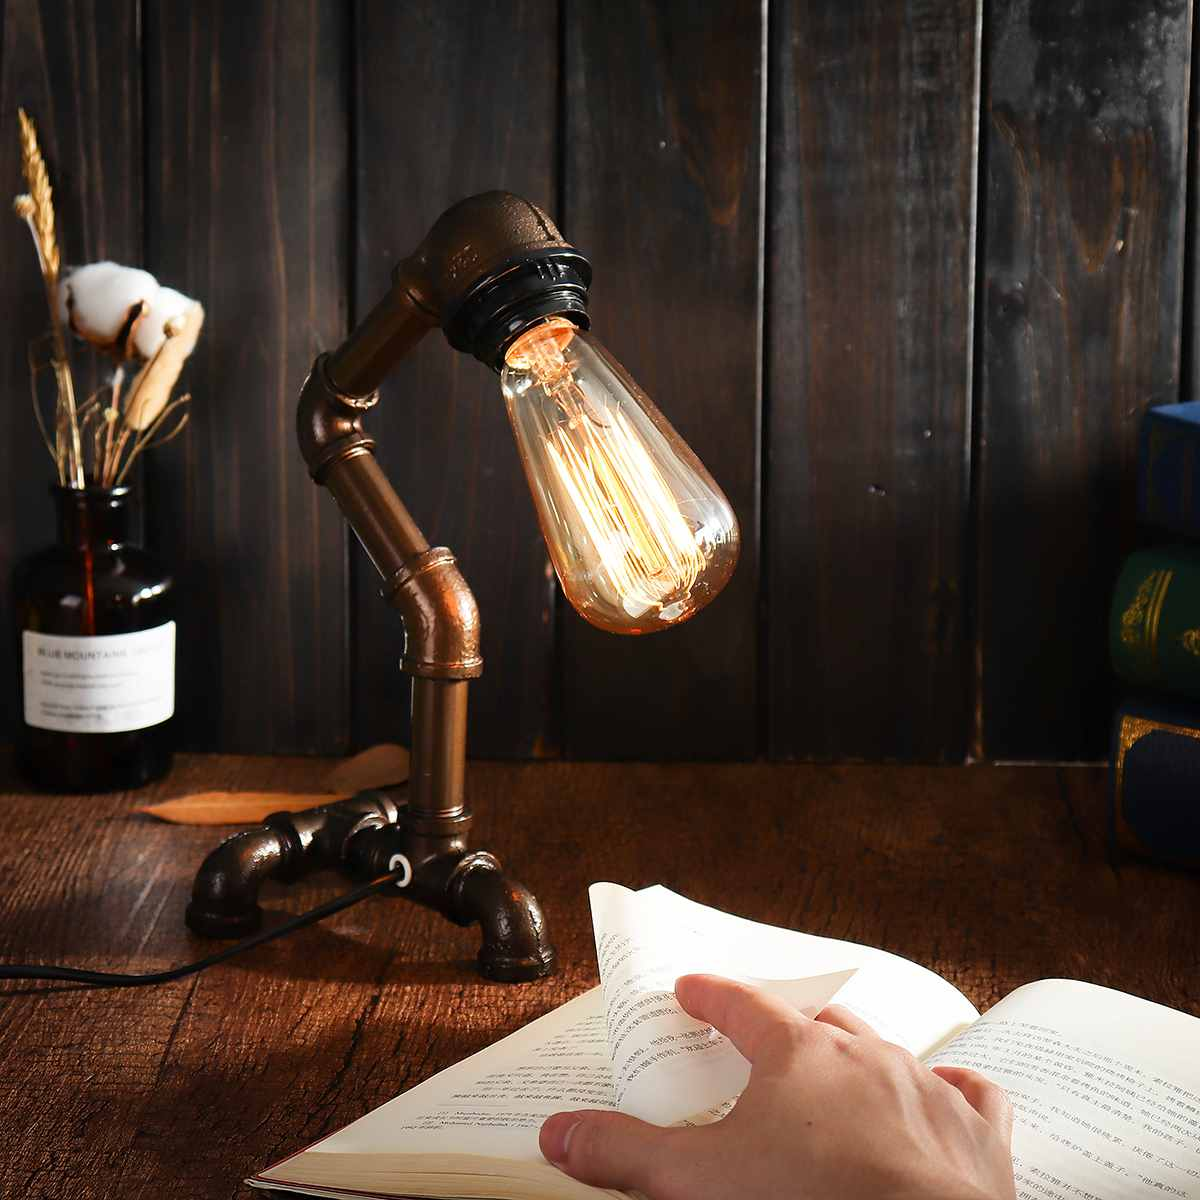 Vintage Industrial Water Pipe Table Lamp Light Steampunk Table Desk Lamp Lantern Fixture E27 Bulb Home Bedroom Decoration